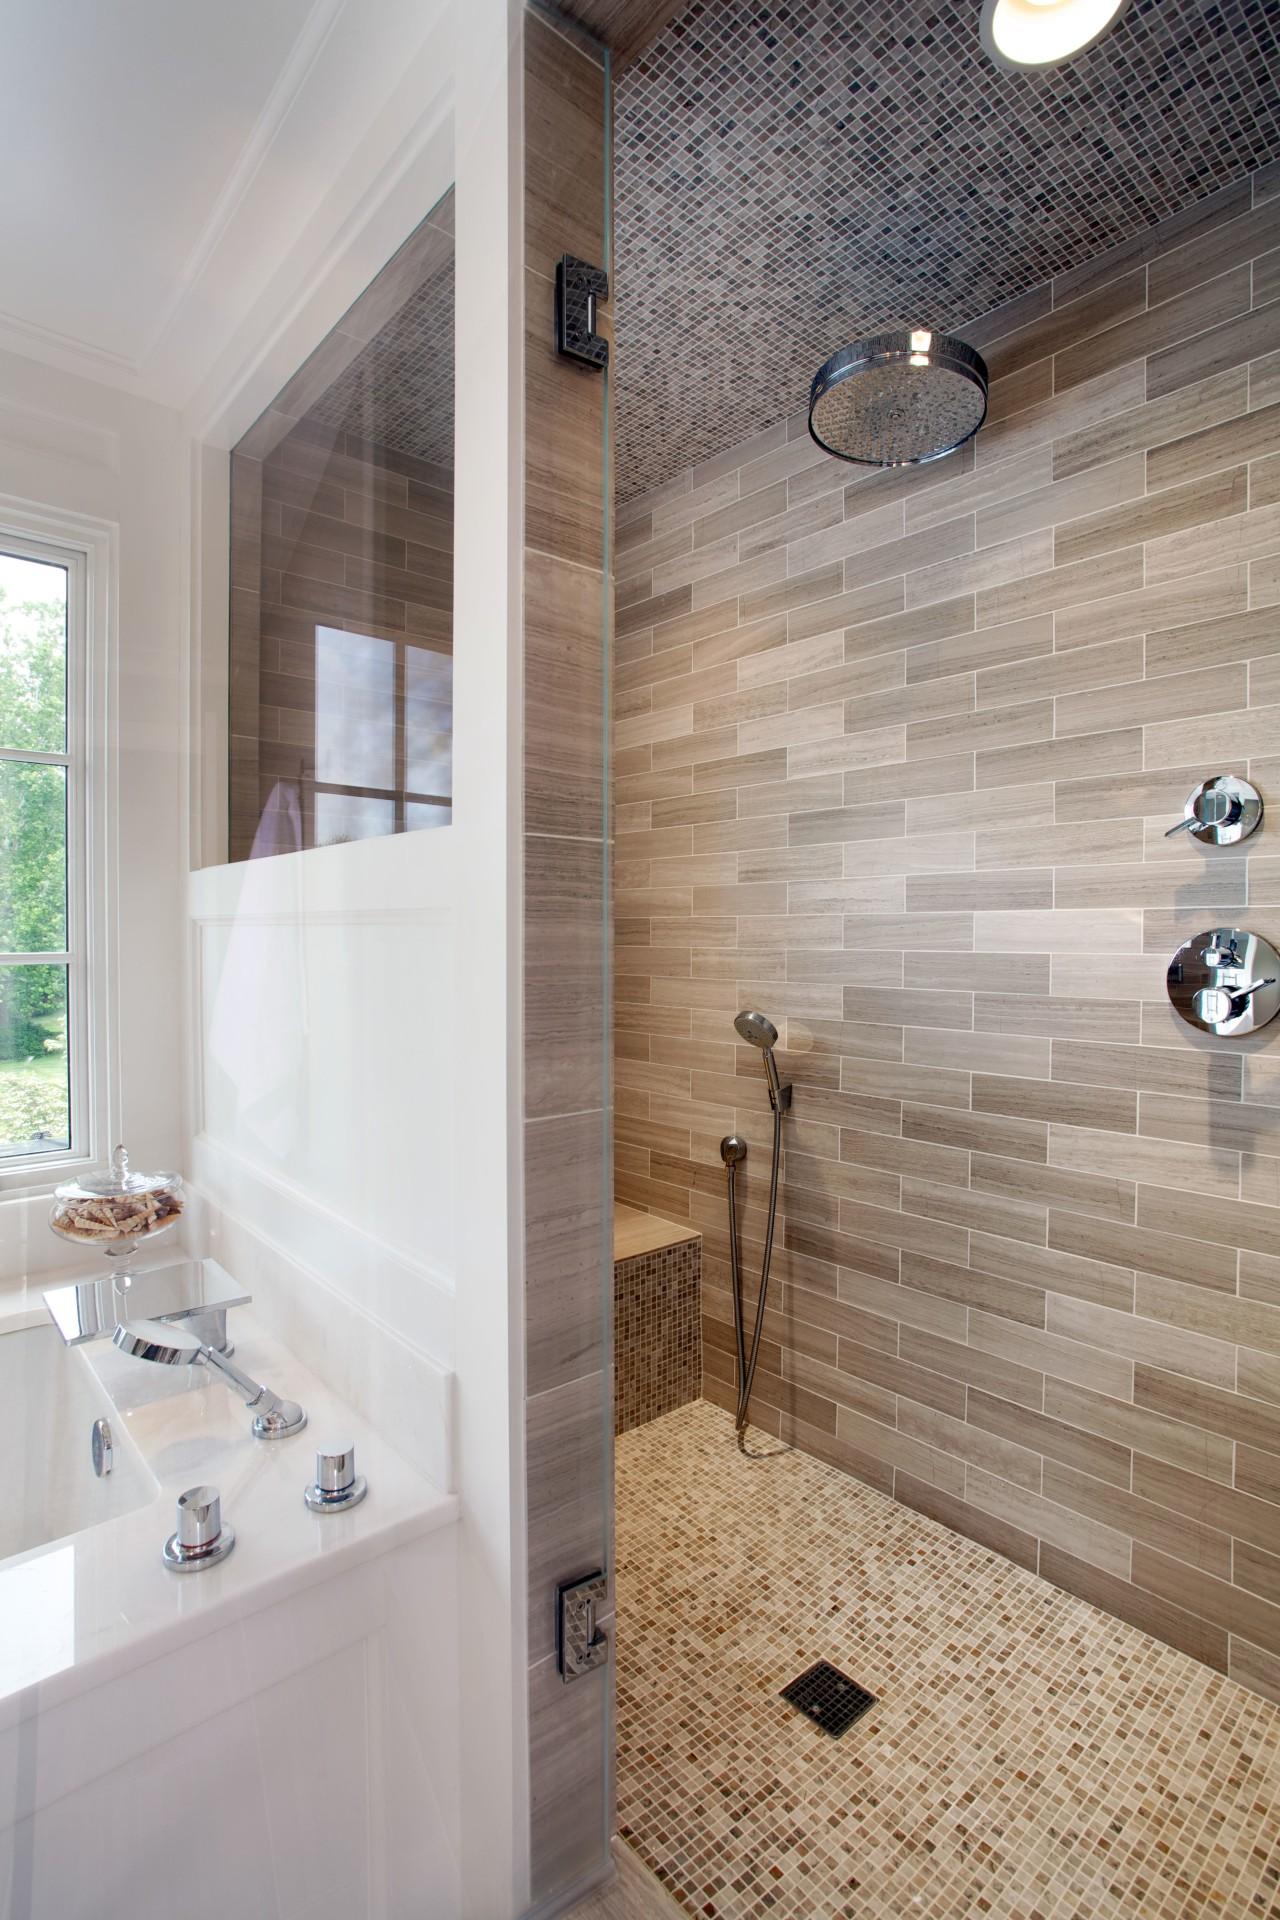 Matching porcelain tiles in varying sizes and formats architecture, bathroom, floor, flooring, home, interior design, plumbing fixture, room, tile, wall, gray